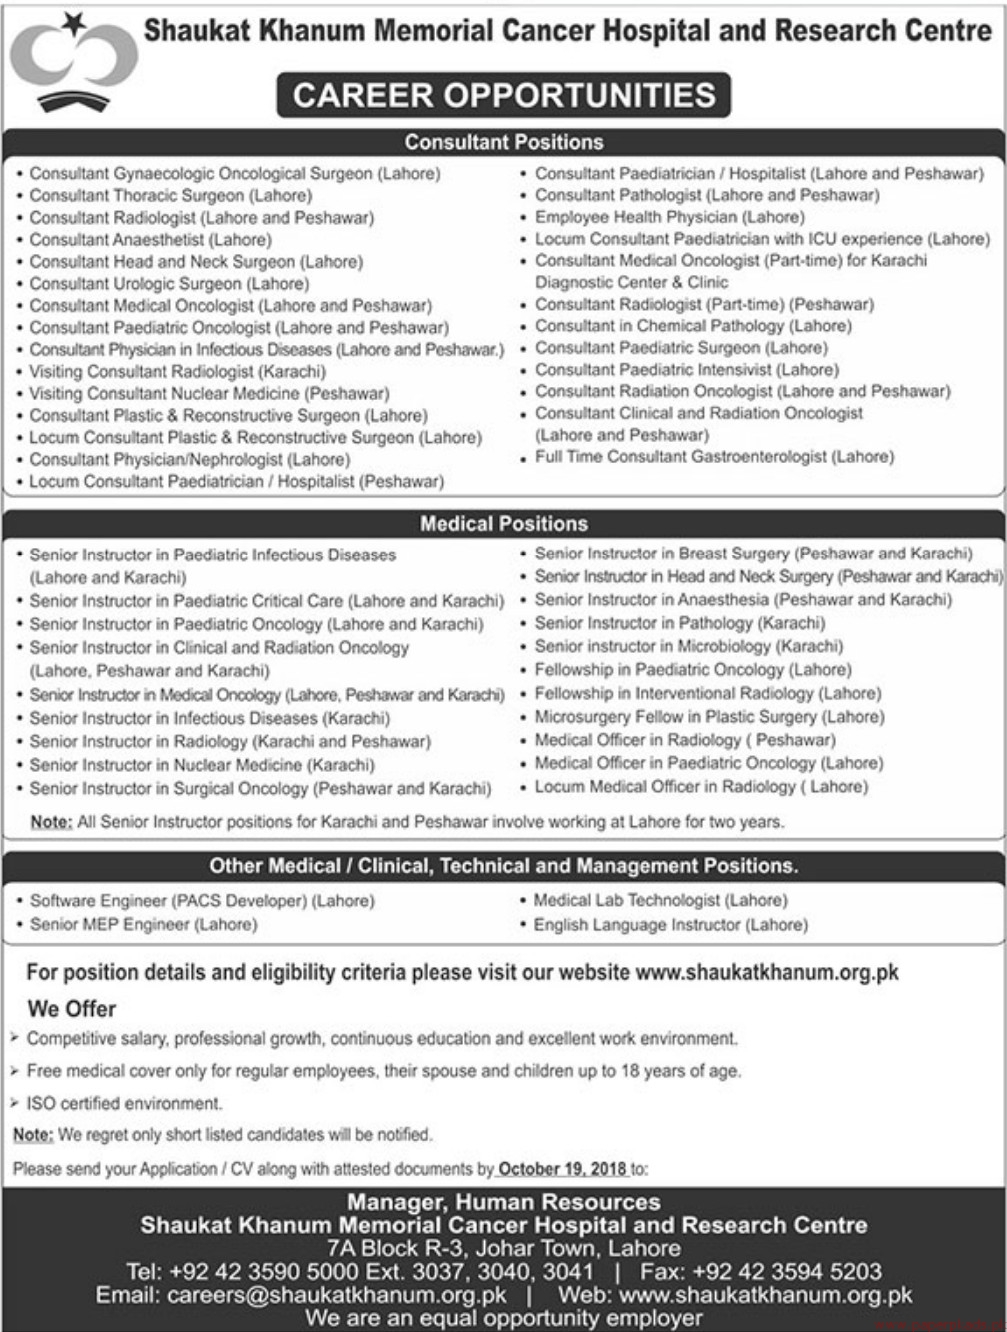 Shaukat Khanum Memorial Cancer Hospital and Research Centre Jobs 2018 Latest